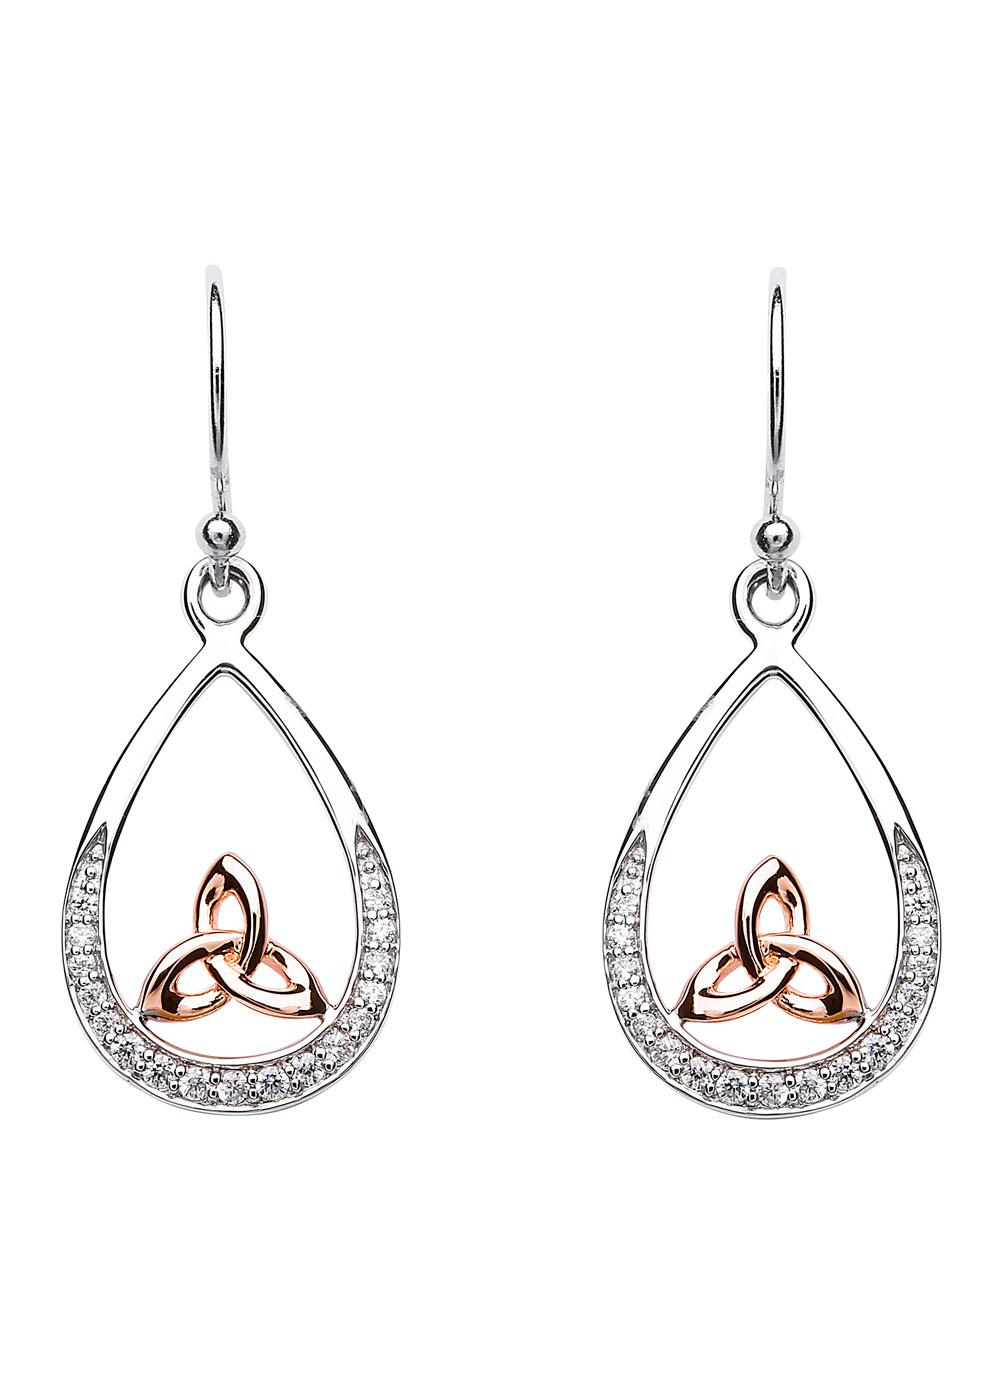 jewelry silver elegance eleganceceltic n sterling knot carys el earrings product celtic cetic